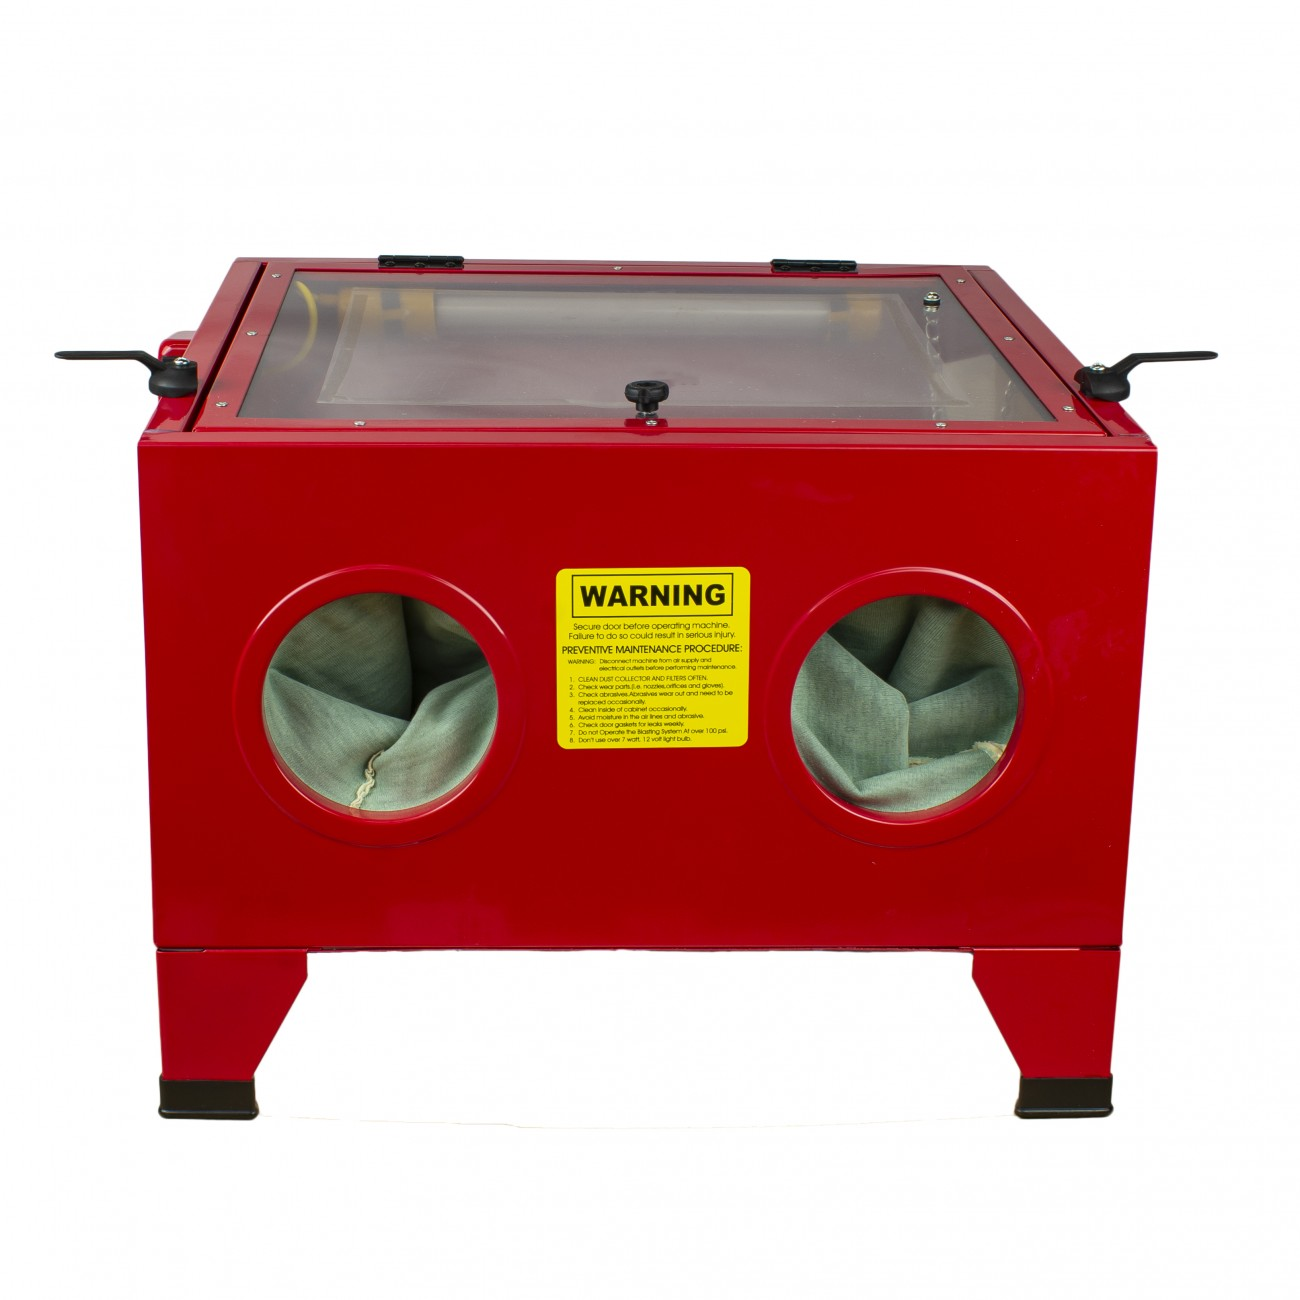 Details about Portable Sand Blasting Bench Top Cabinet (Large) | Abrasive  Blaster W/ Light